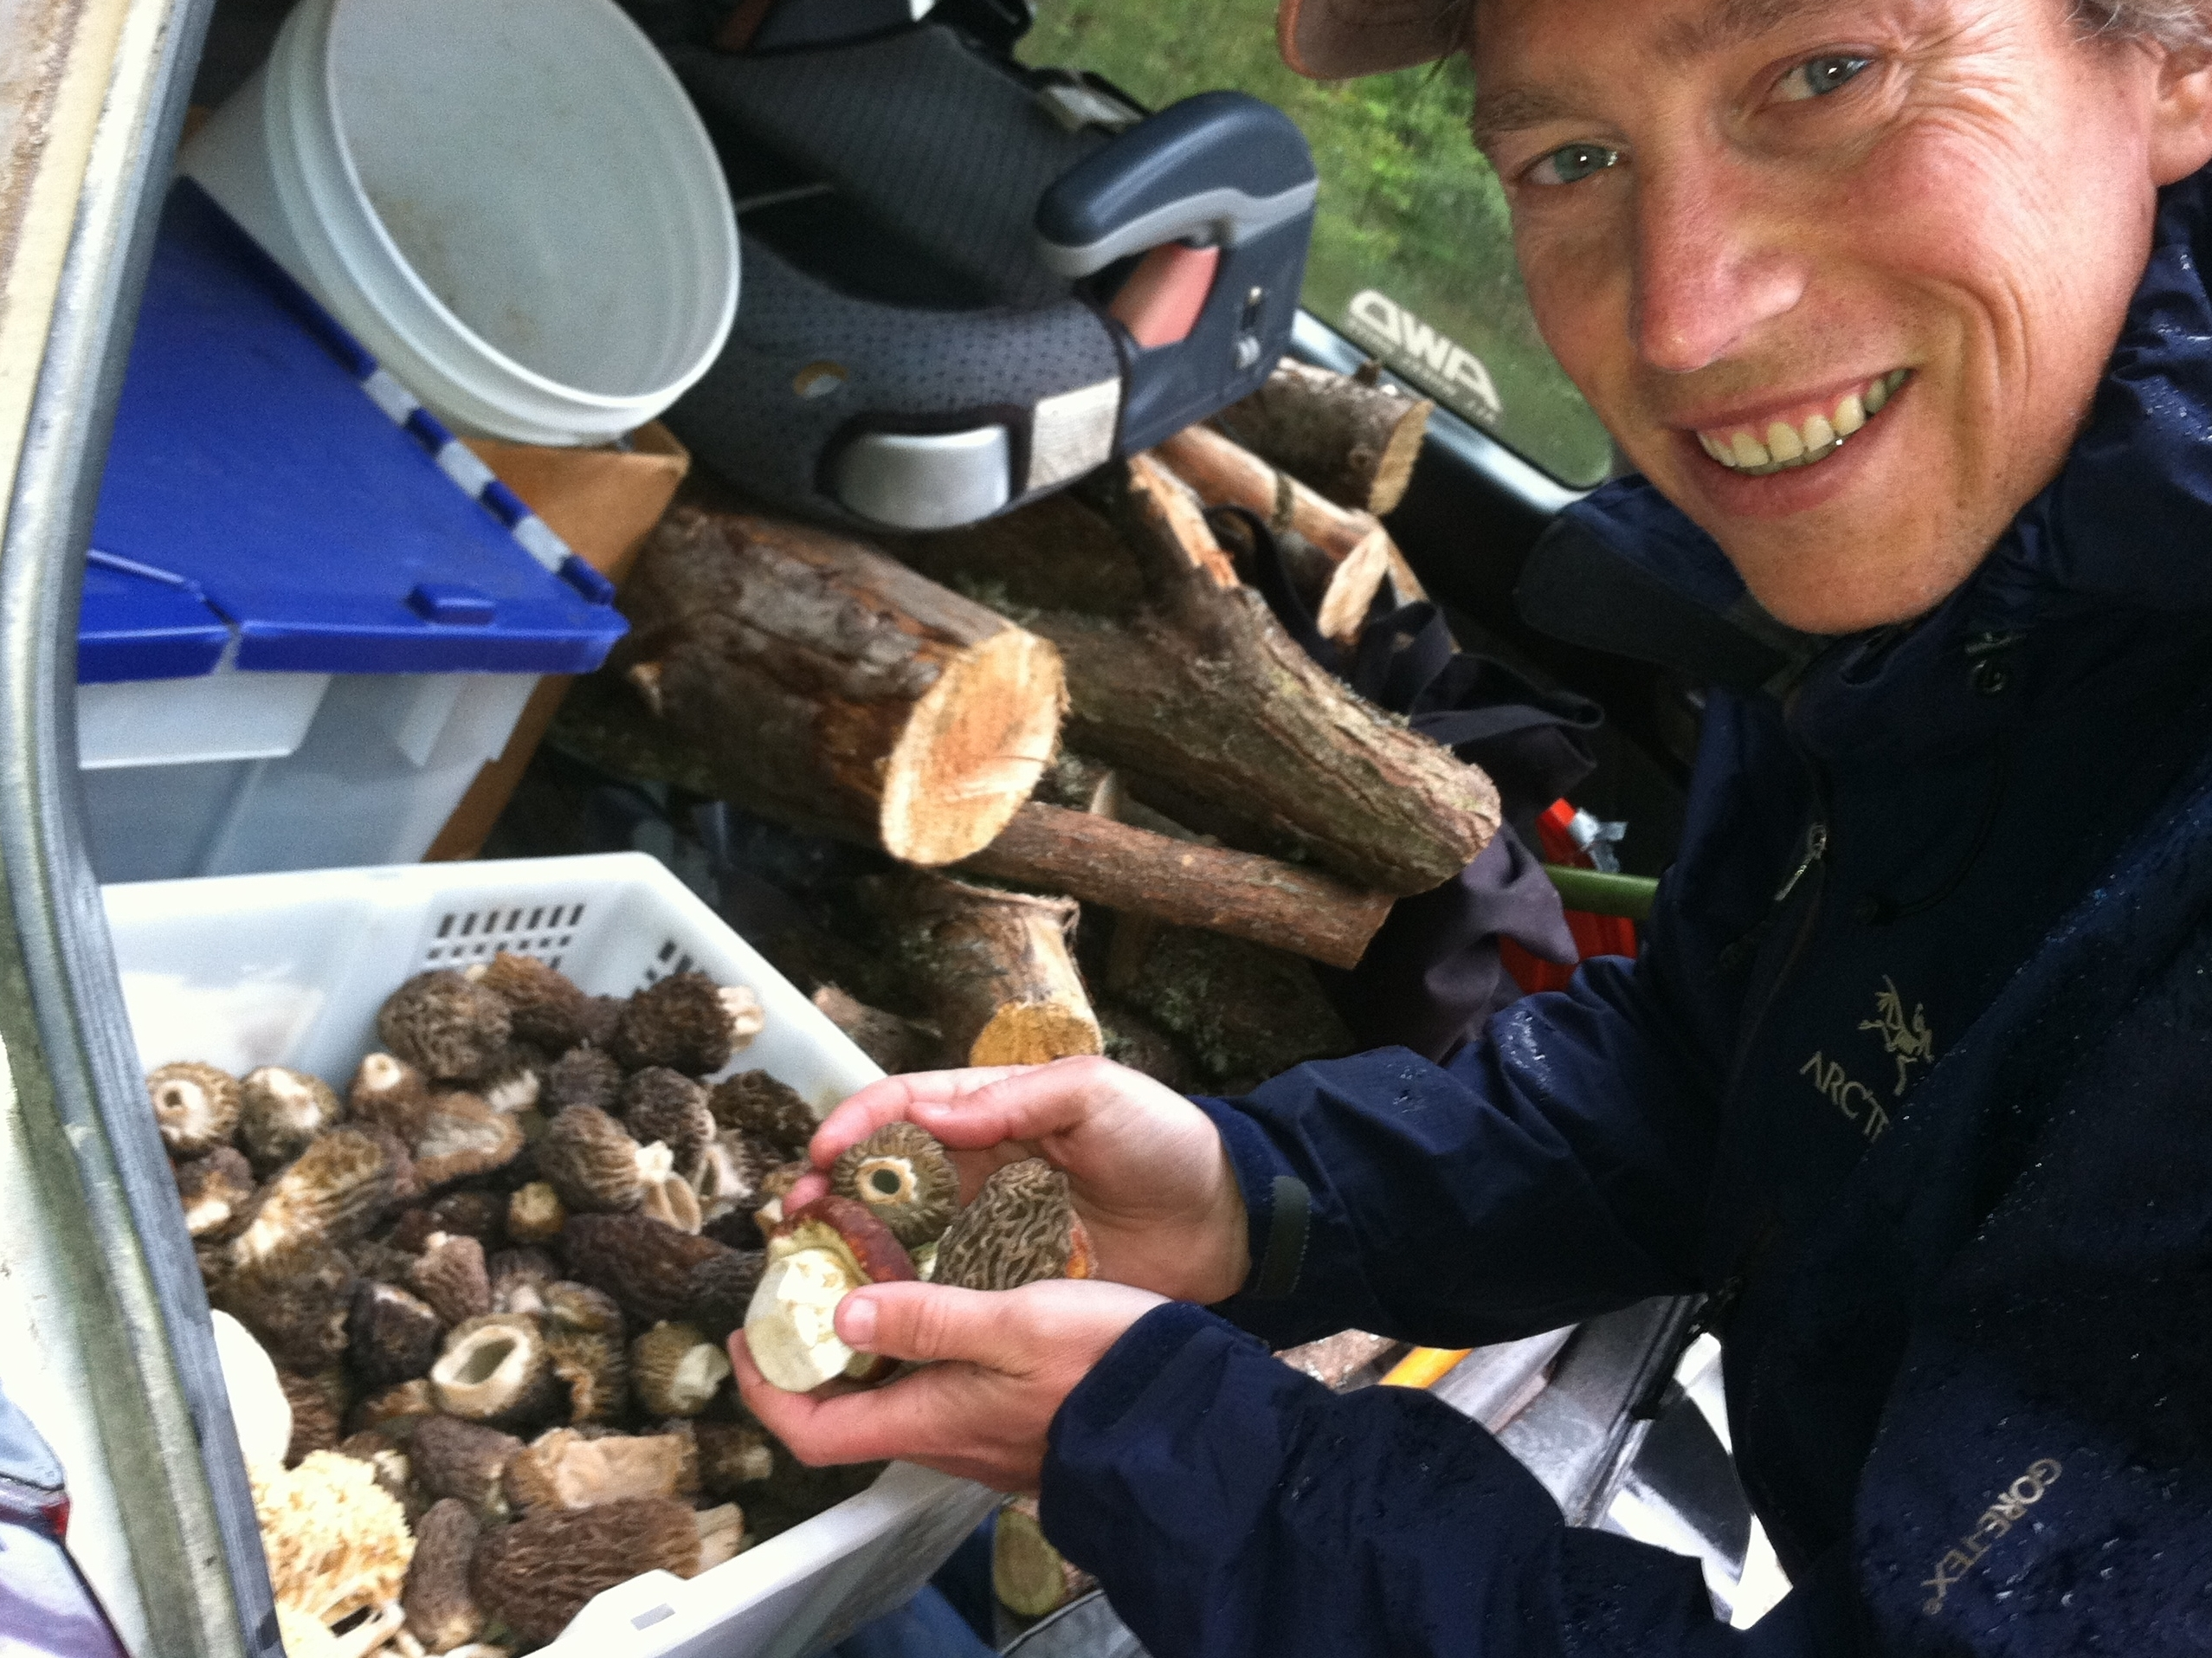 Seattle Forager Inspires Others To Learn About Wild, Forgotten Foods